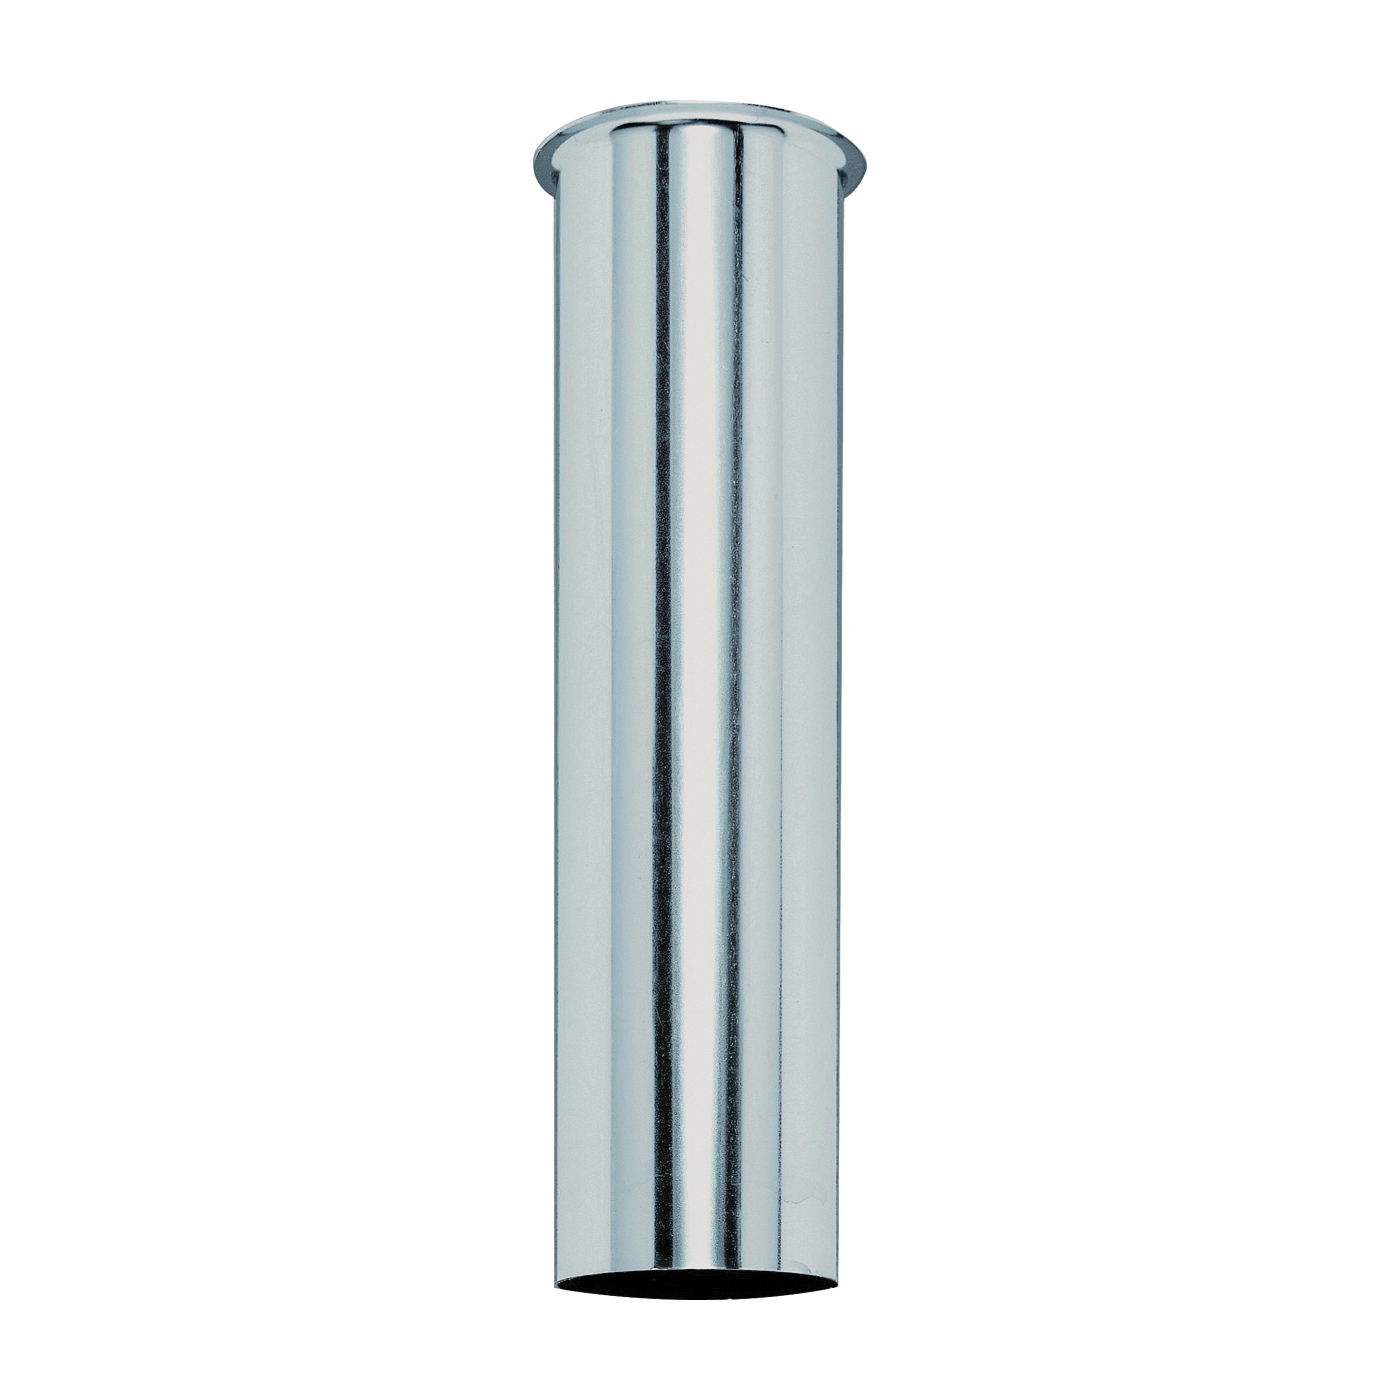 Picture of Plumb Pak PP161CP Sink Tailpiece, 1-1/4 in Flange